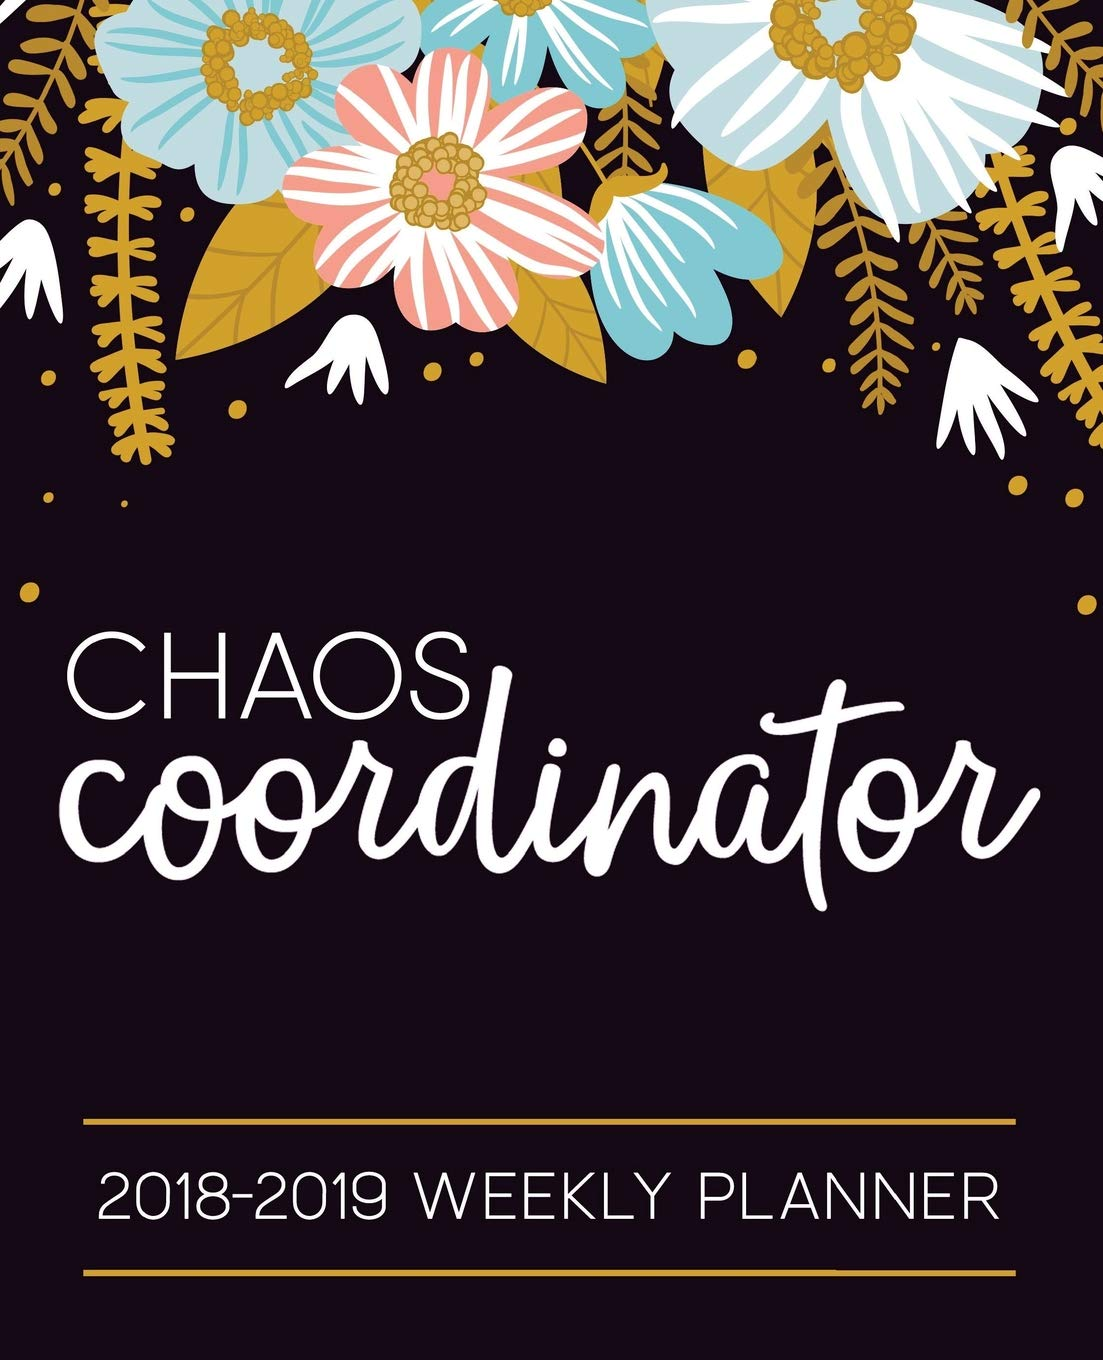 Amazon.com: Chaos Coordinator: 2018-2019 Weekly Planner ...